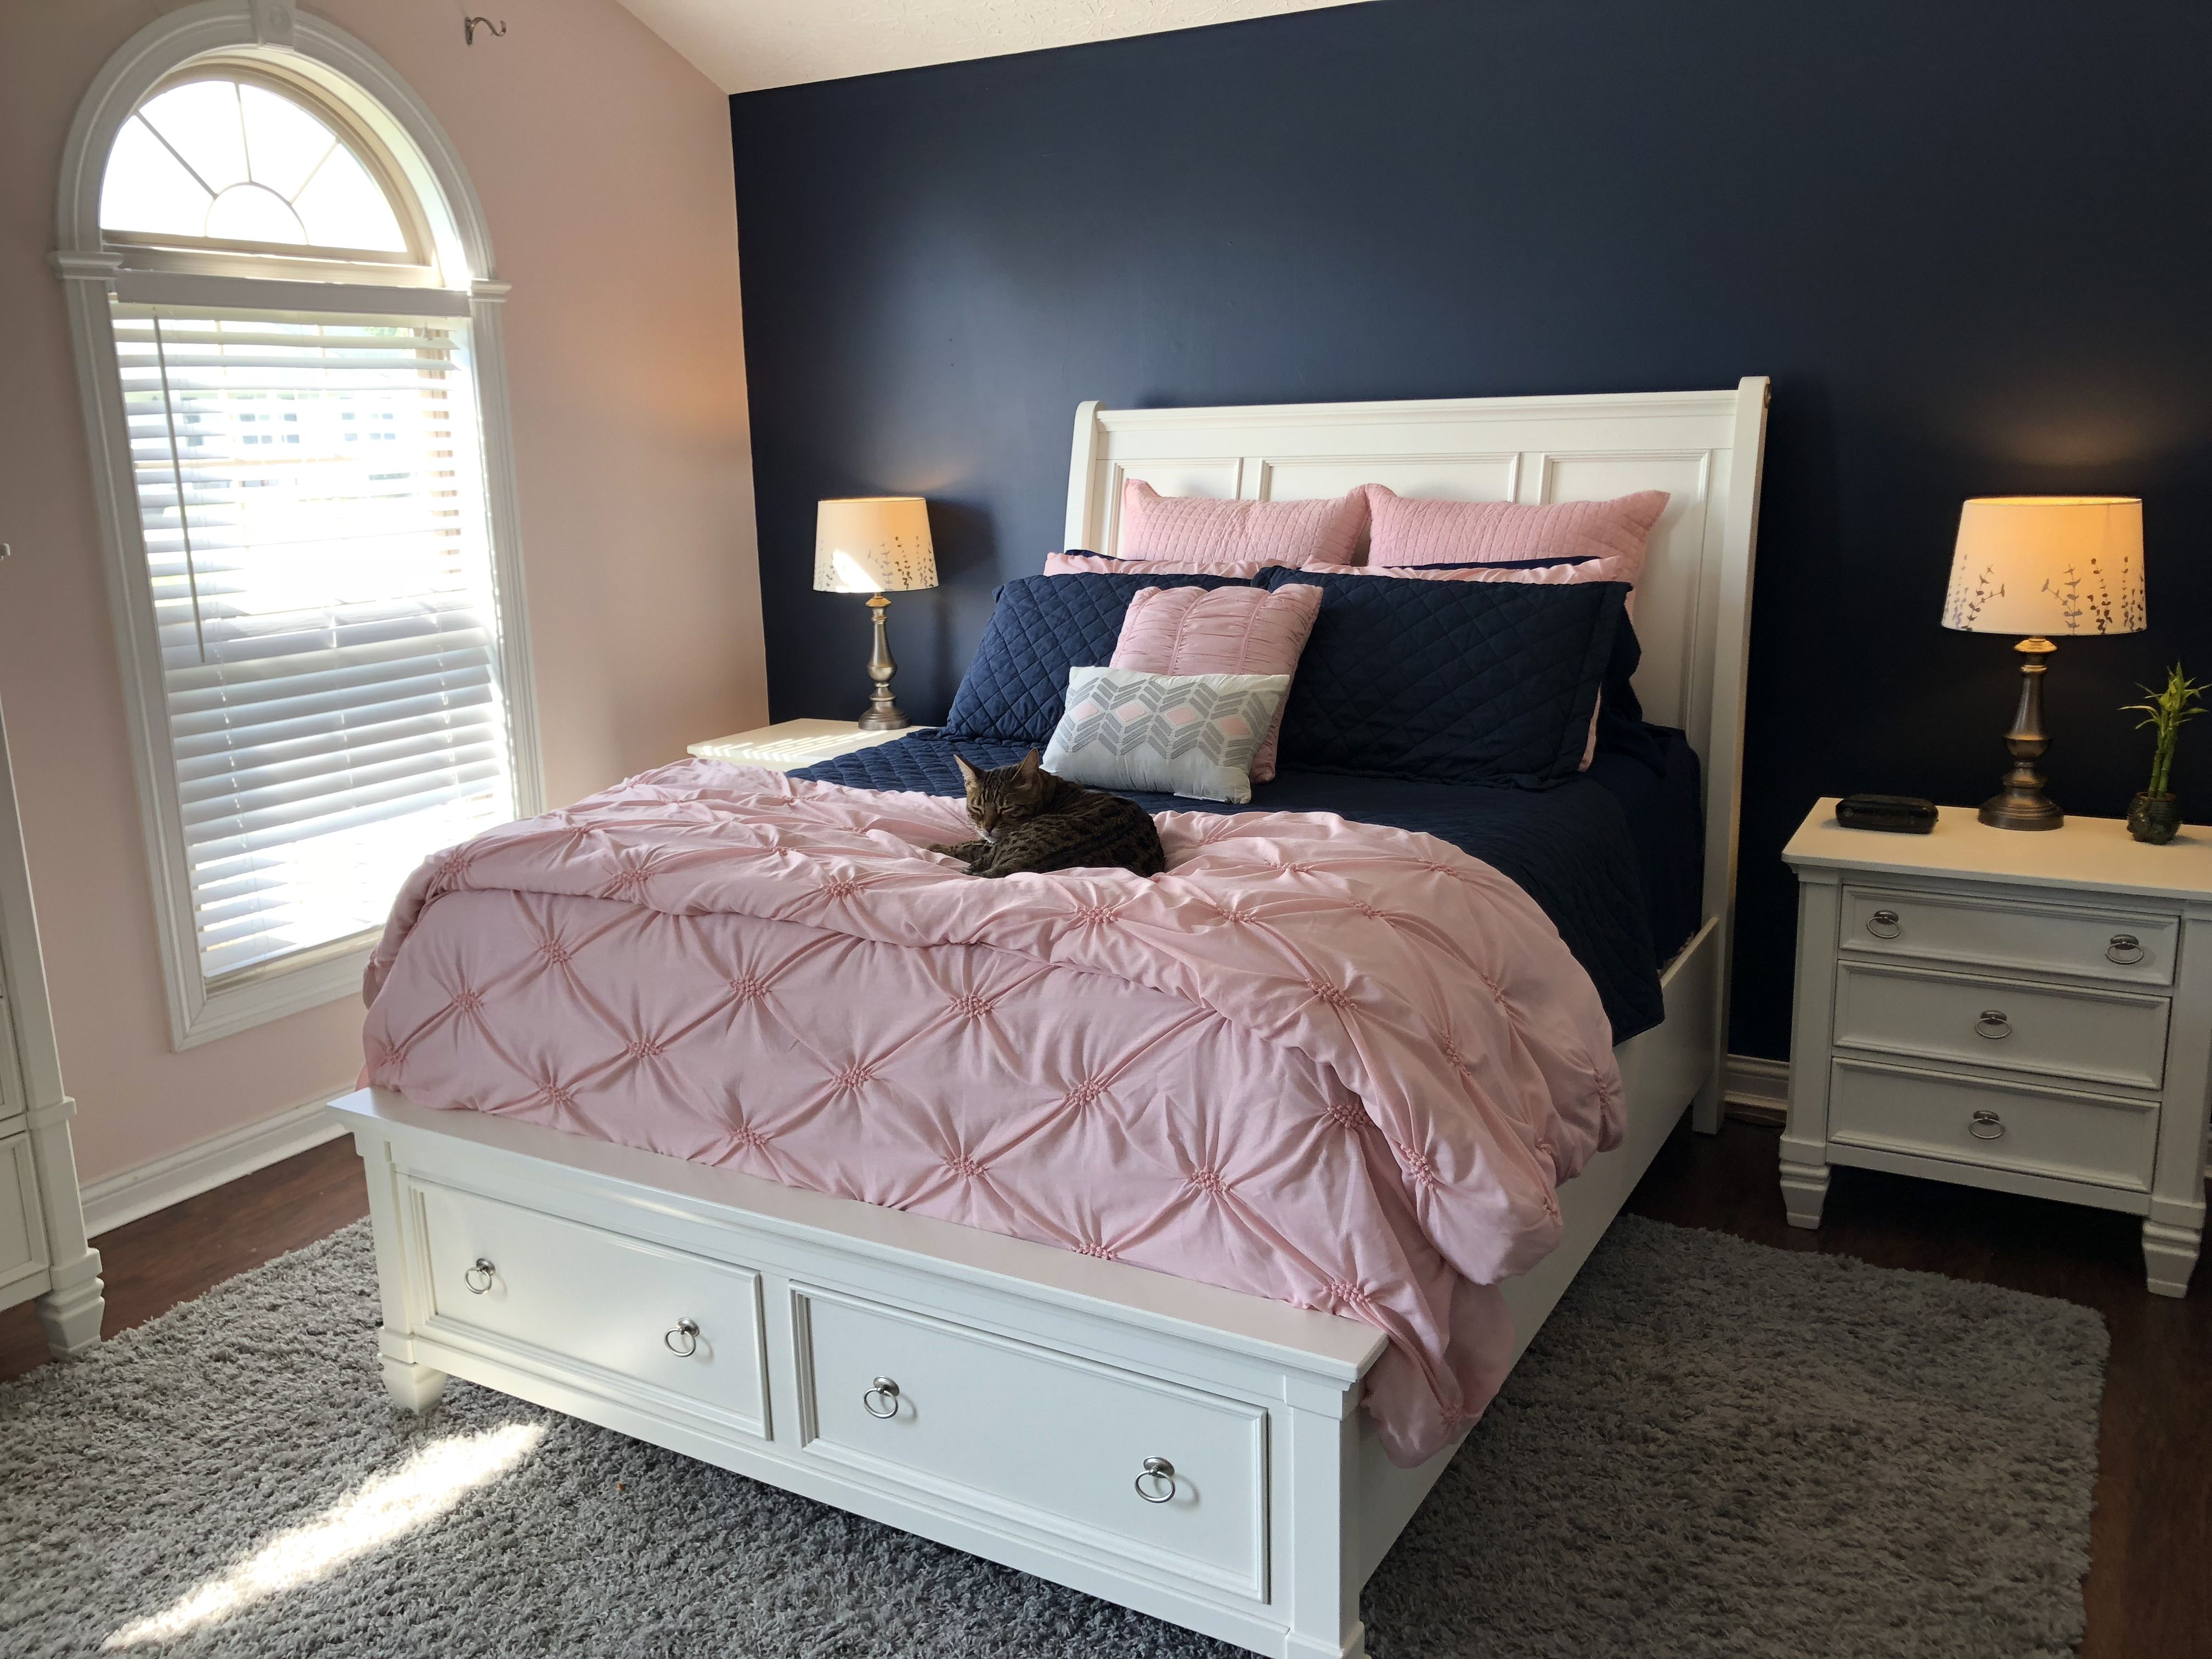 Best Blush Pink And Navy Master Bedroom Navy Master Bedroom 400 x 300